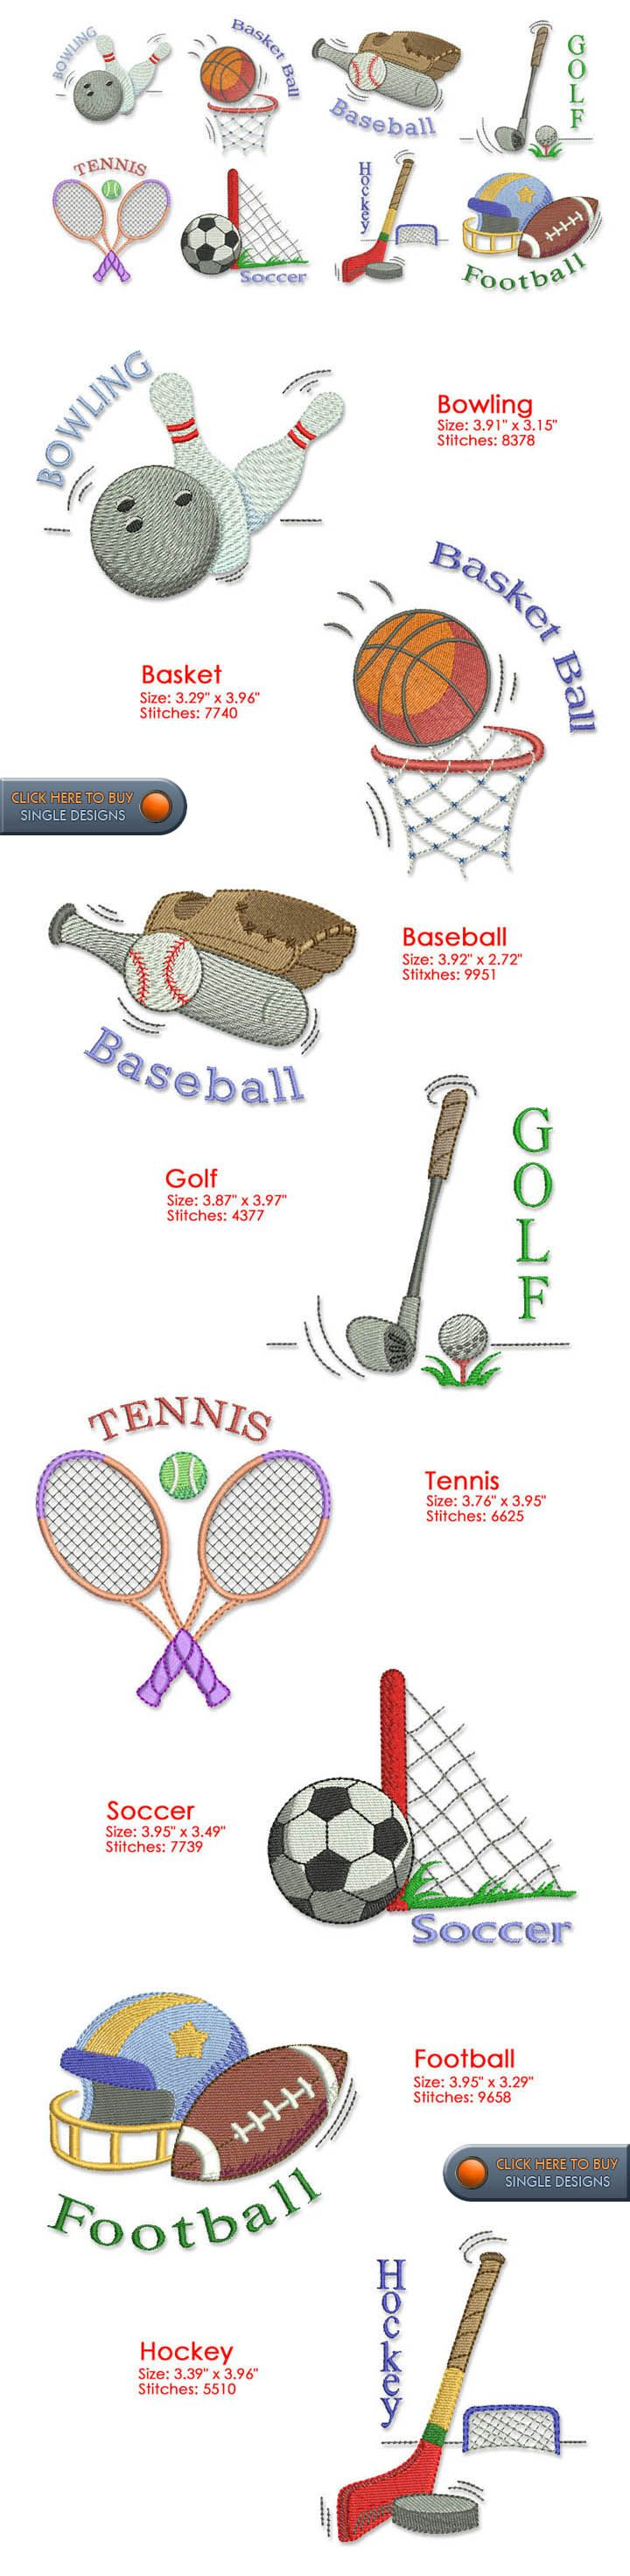 SPORTS Embroidery Designs Free Embroidery Design Patterns Applique ...